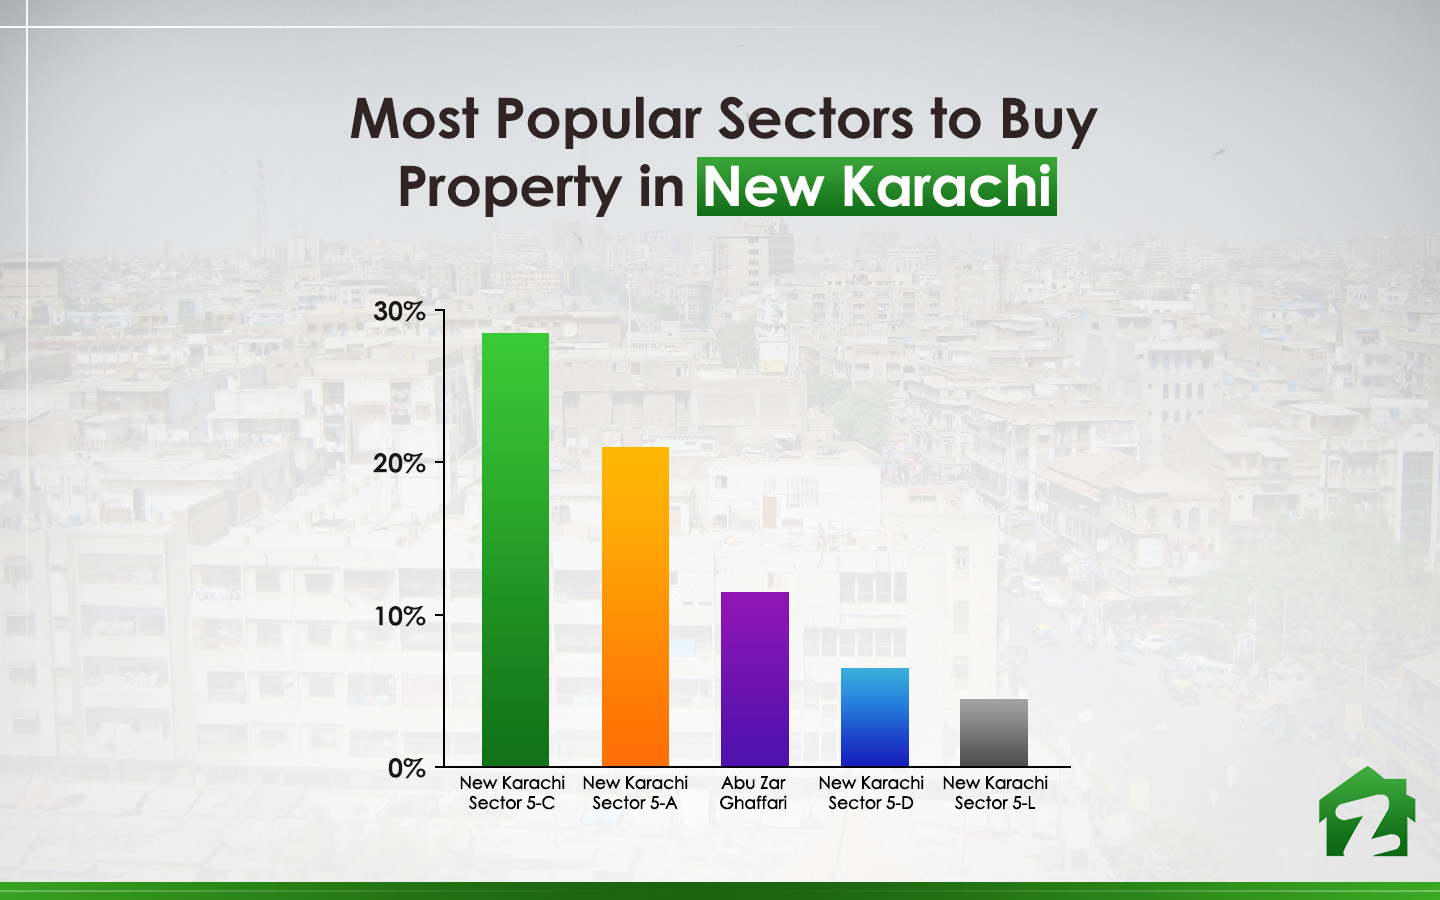 Top 5 sectors in purchasing property